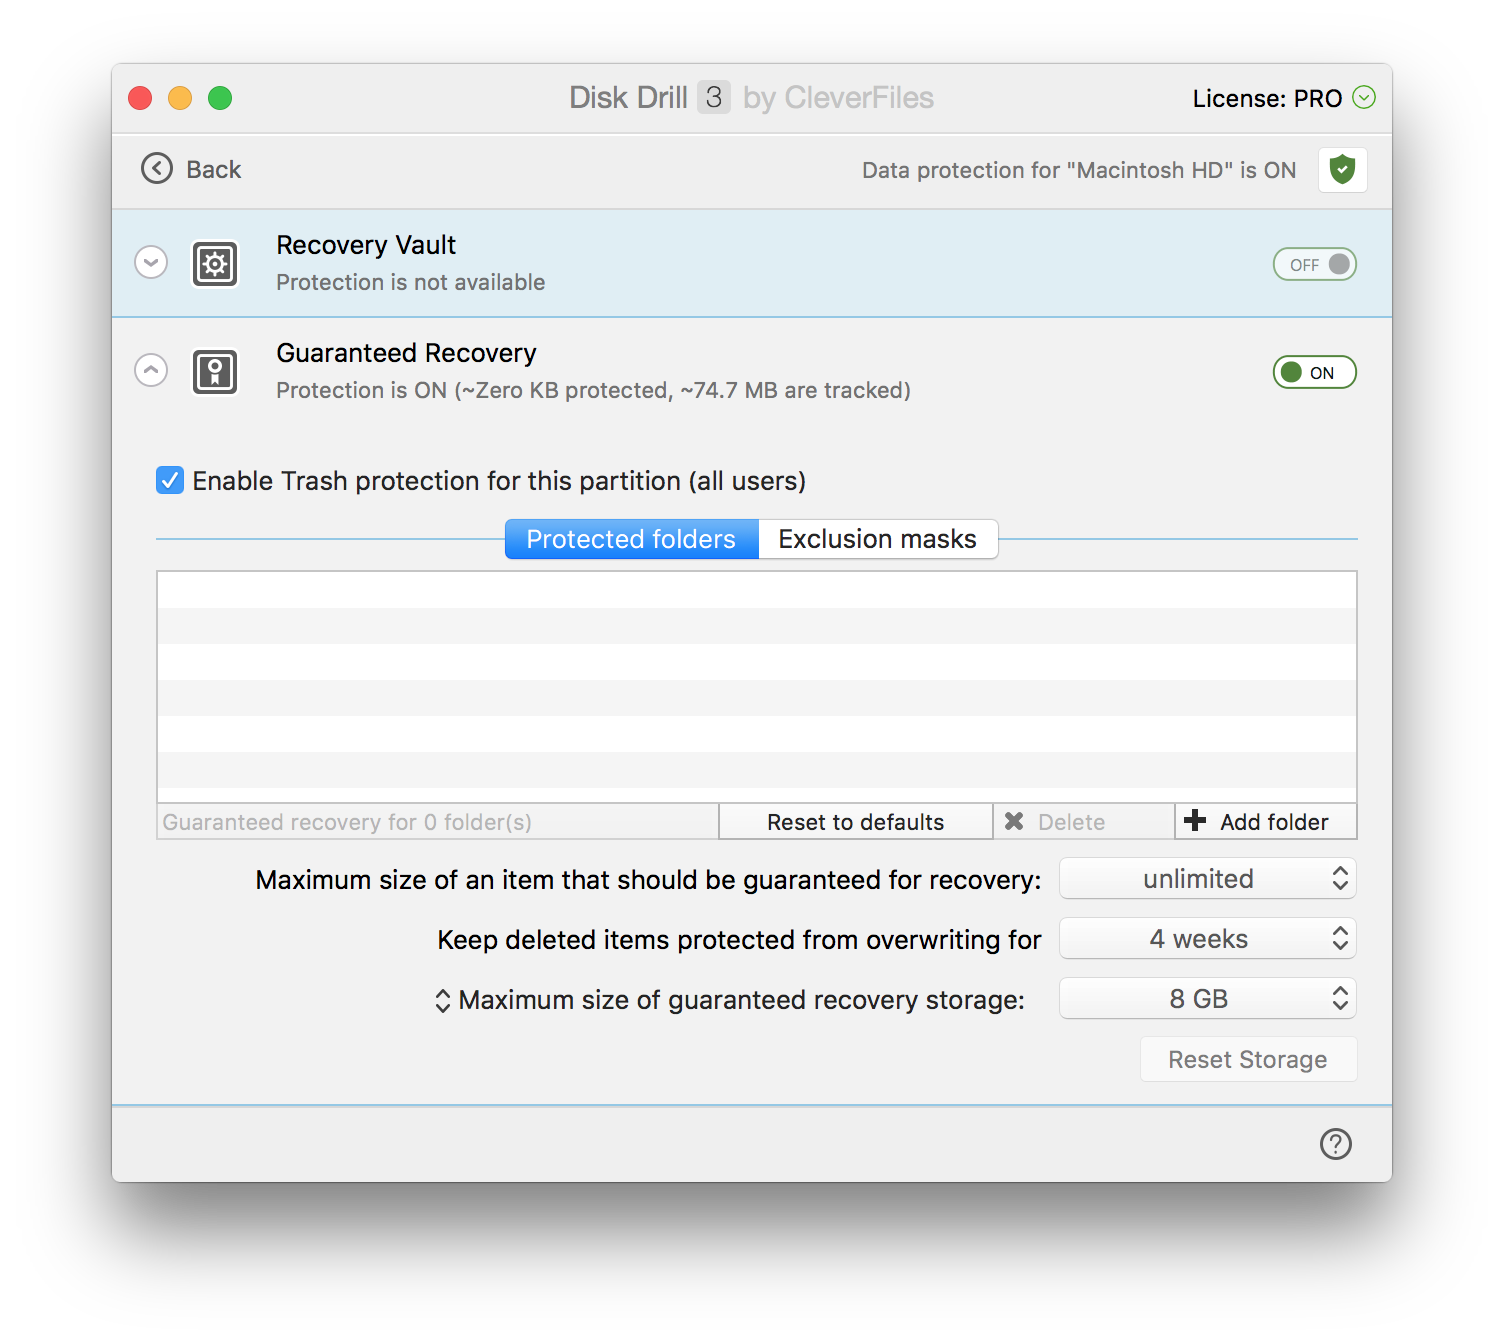 Disk Drill 3 Data Protection Options